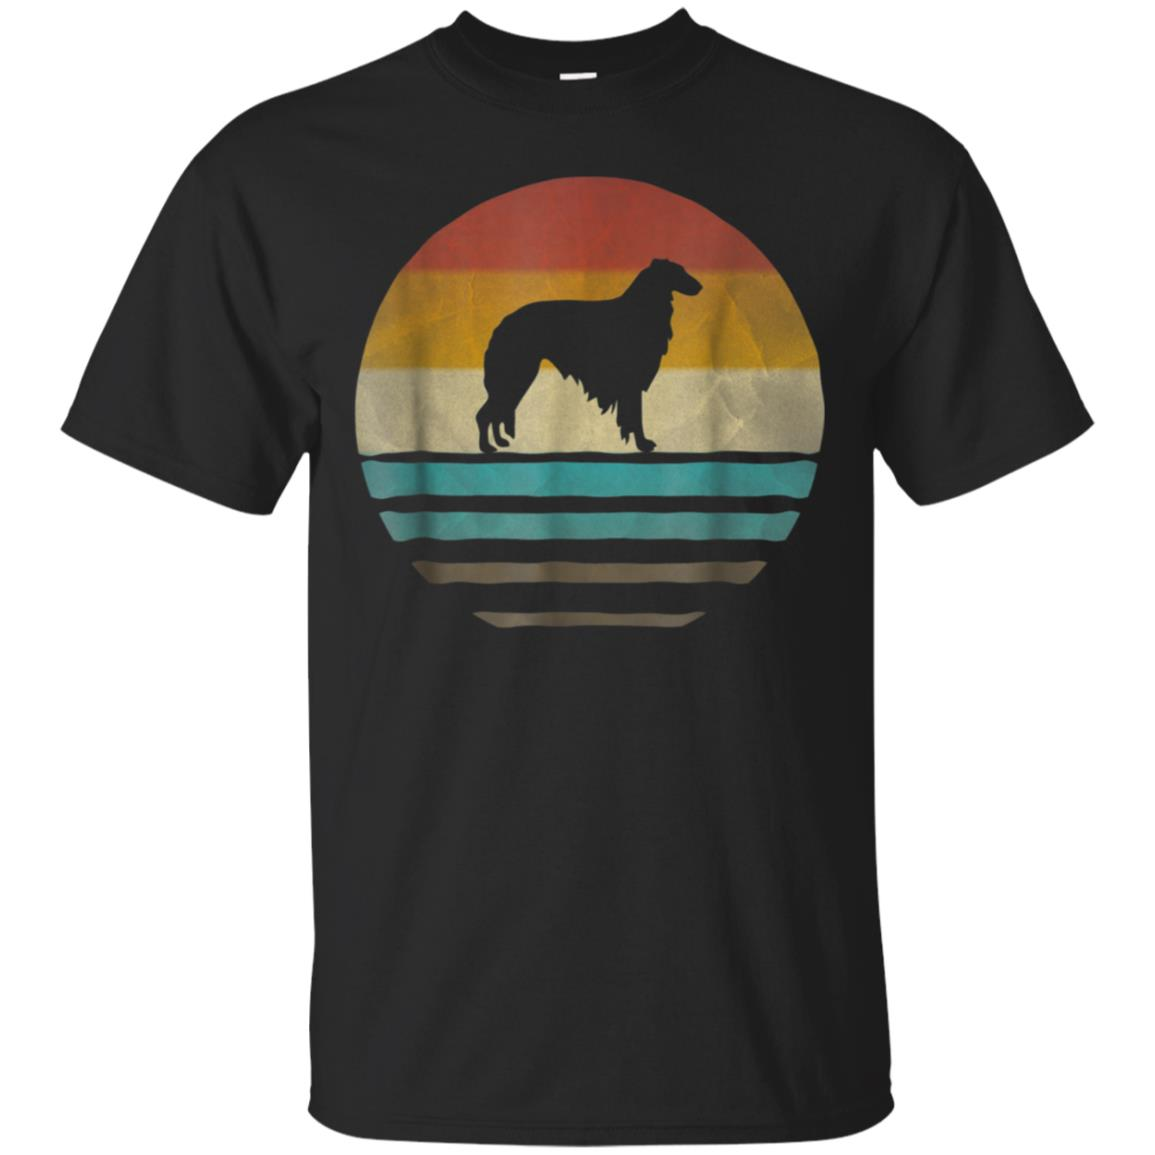 Borzoi Dog Shirt Retro Vintage 70s Silhouette Distressed 99promocode